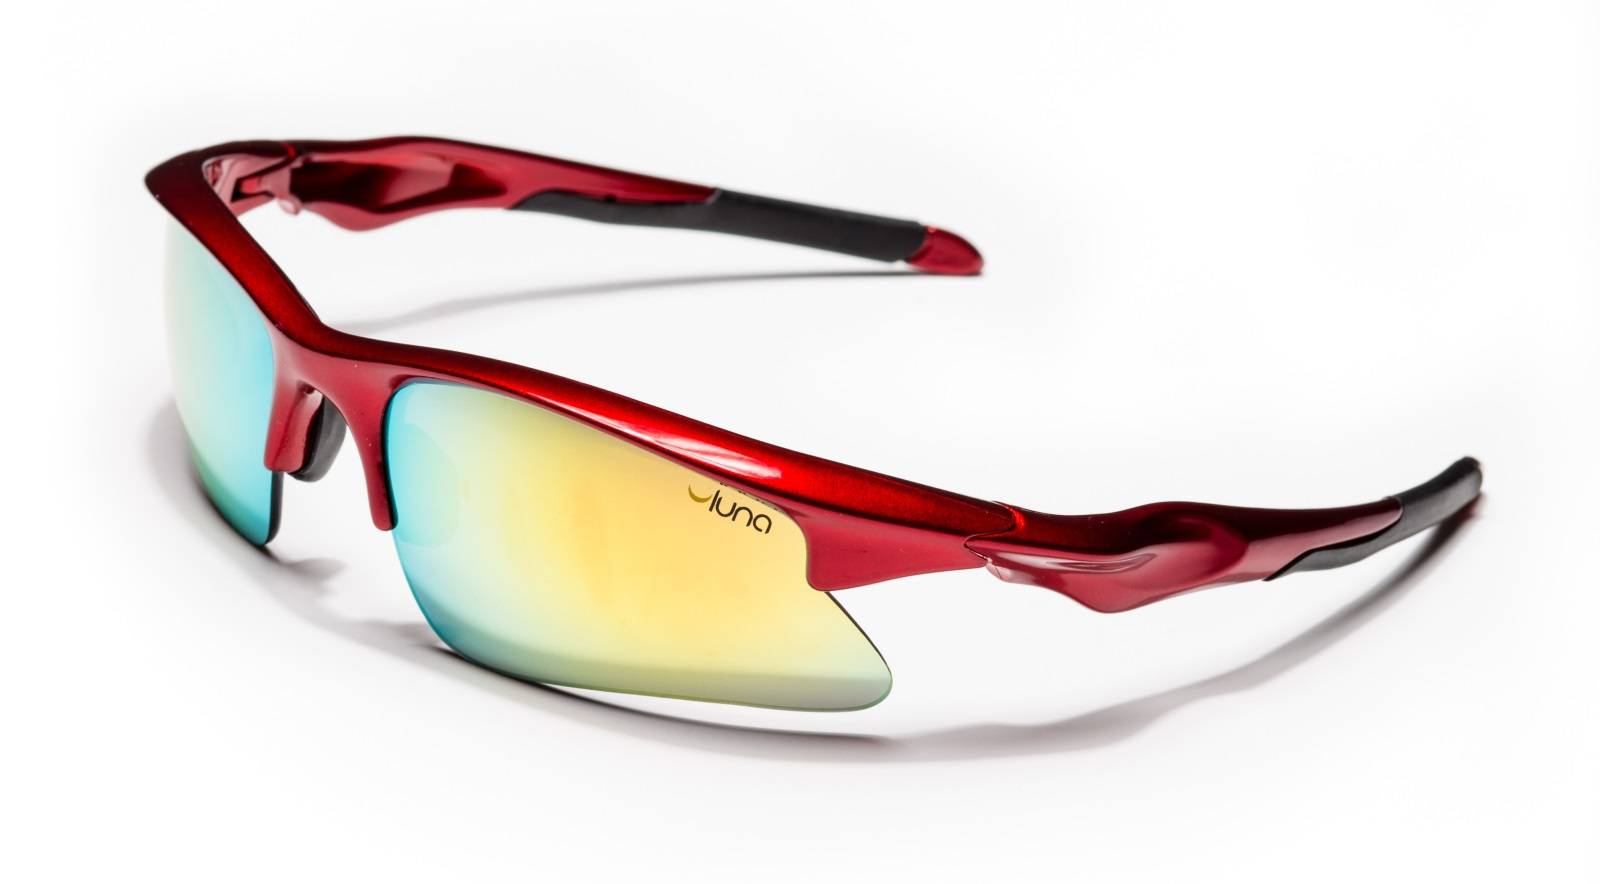 Luna Glasses Luna Mars Running Cycling Sunglasses with Hard Protective Case (Mirrored Gold Lenses, Deep Red Frame)